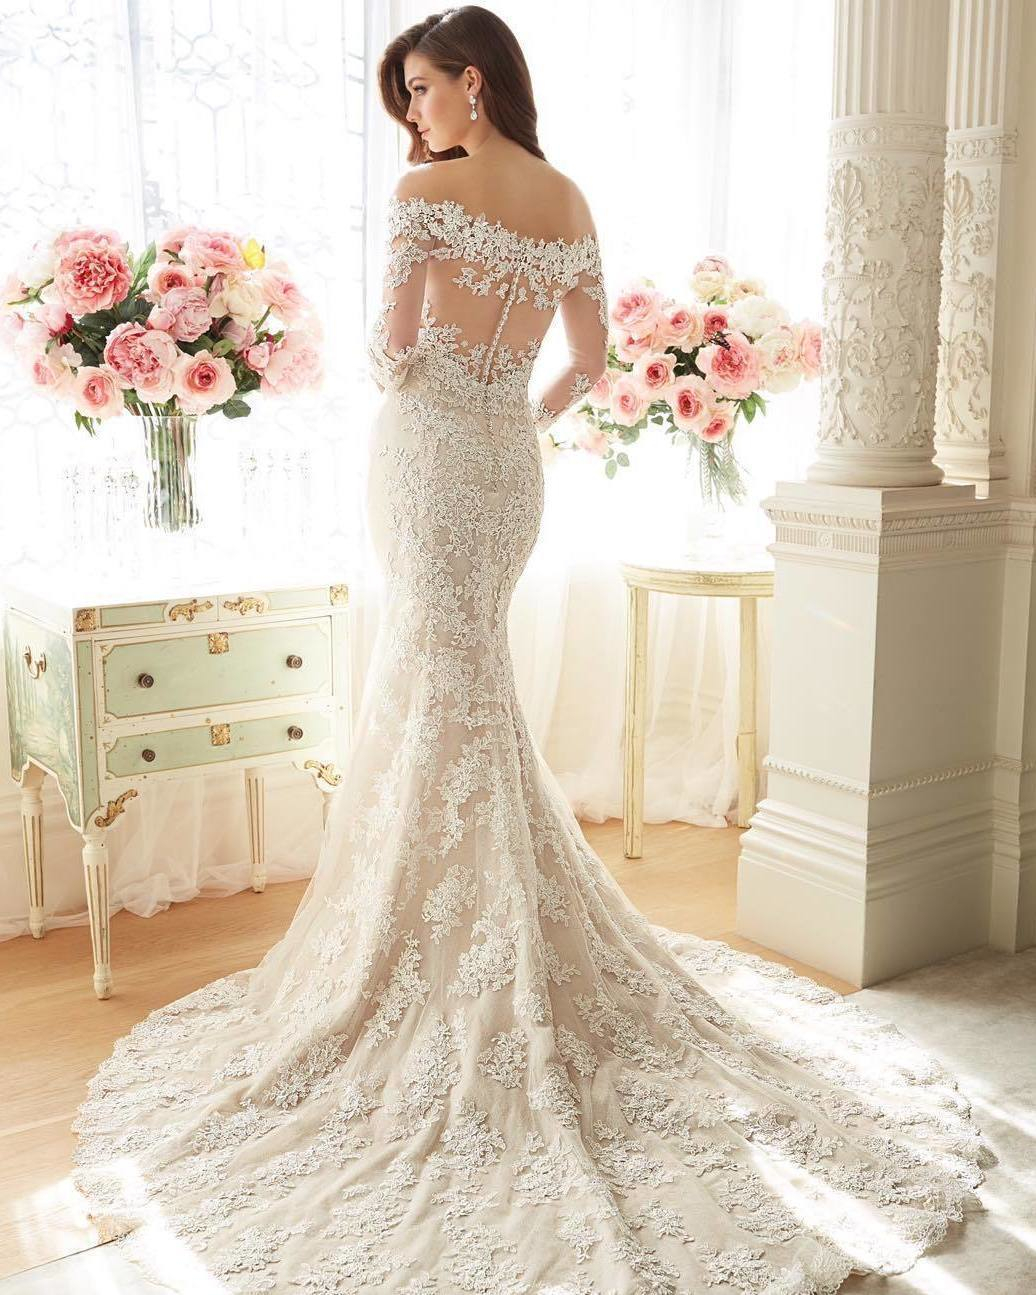 Wedding dress this piece definitely displays a glamorous for Wedding dress display at home